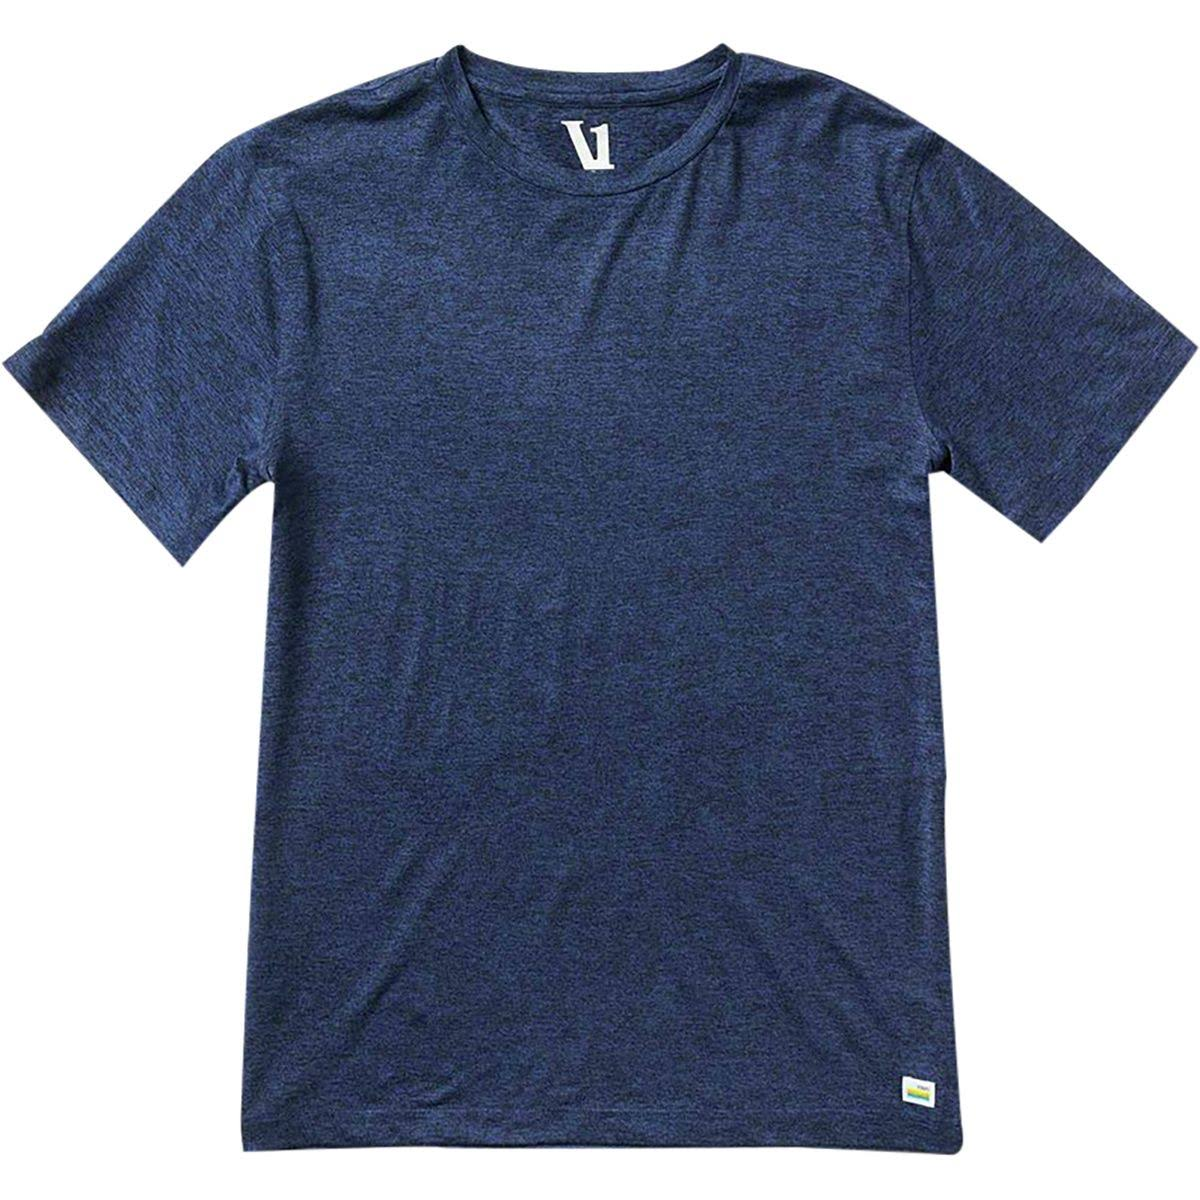 Vuori Men's Strato Tech Yoga T-shirt - Navy Heather Blue, X-Large